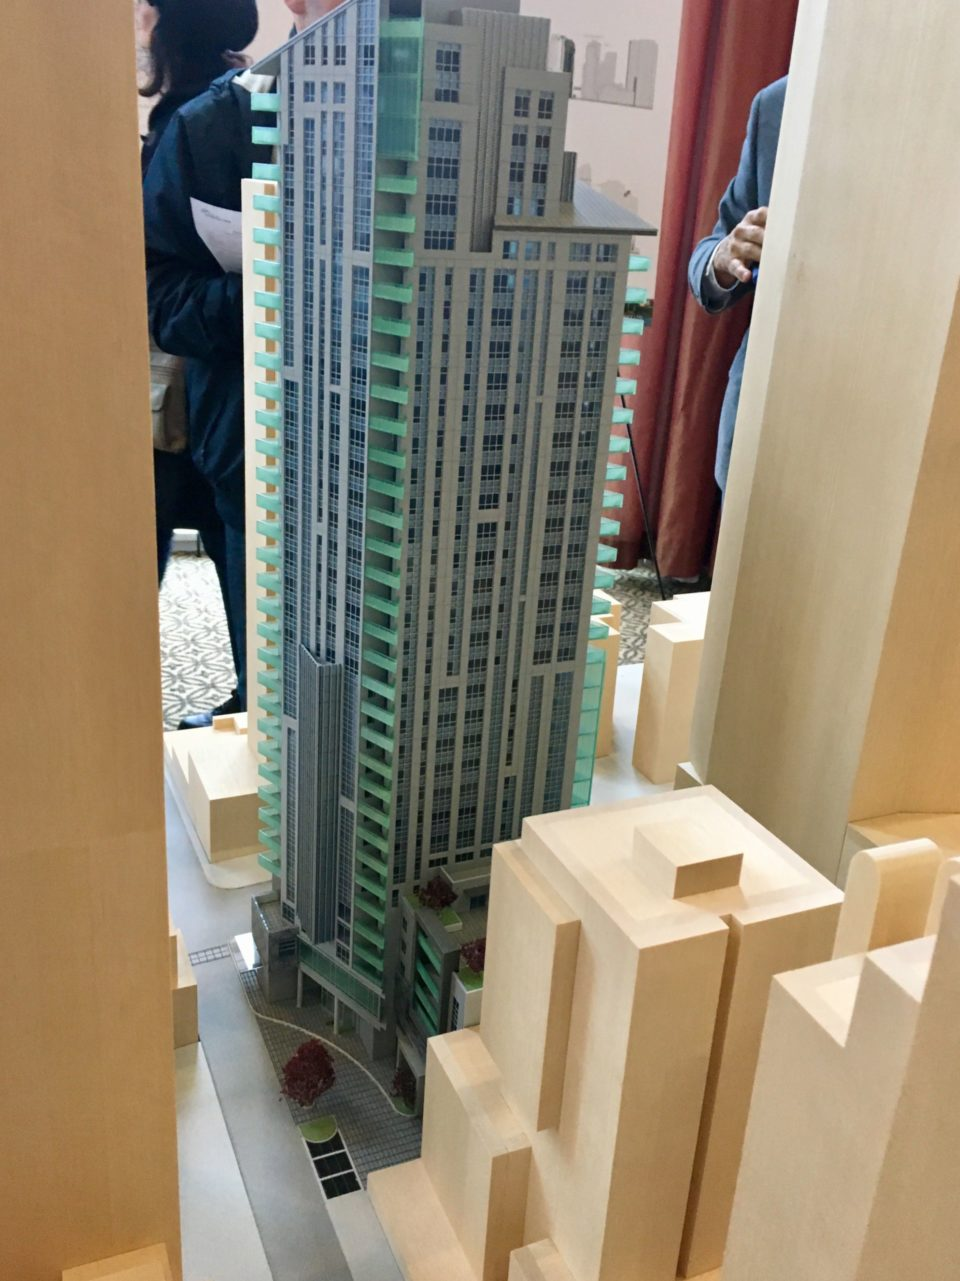 1290 Hornby Street tower model open house